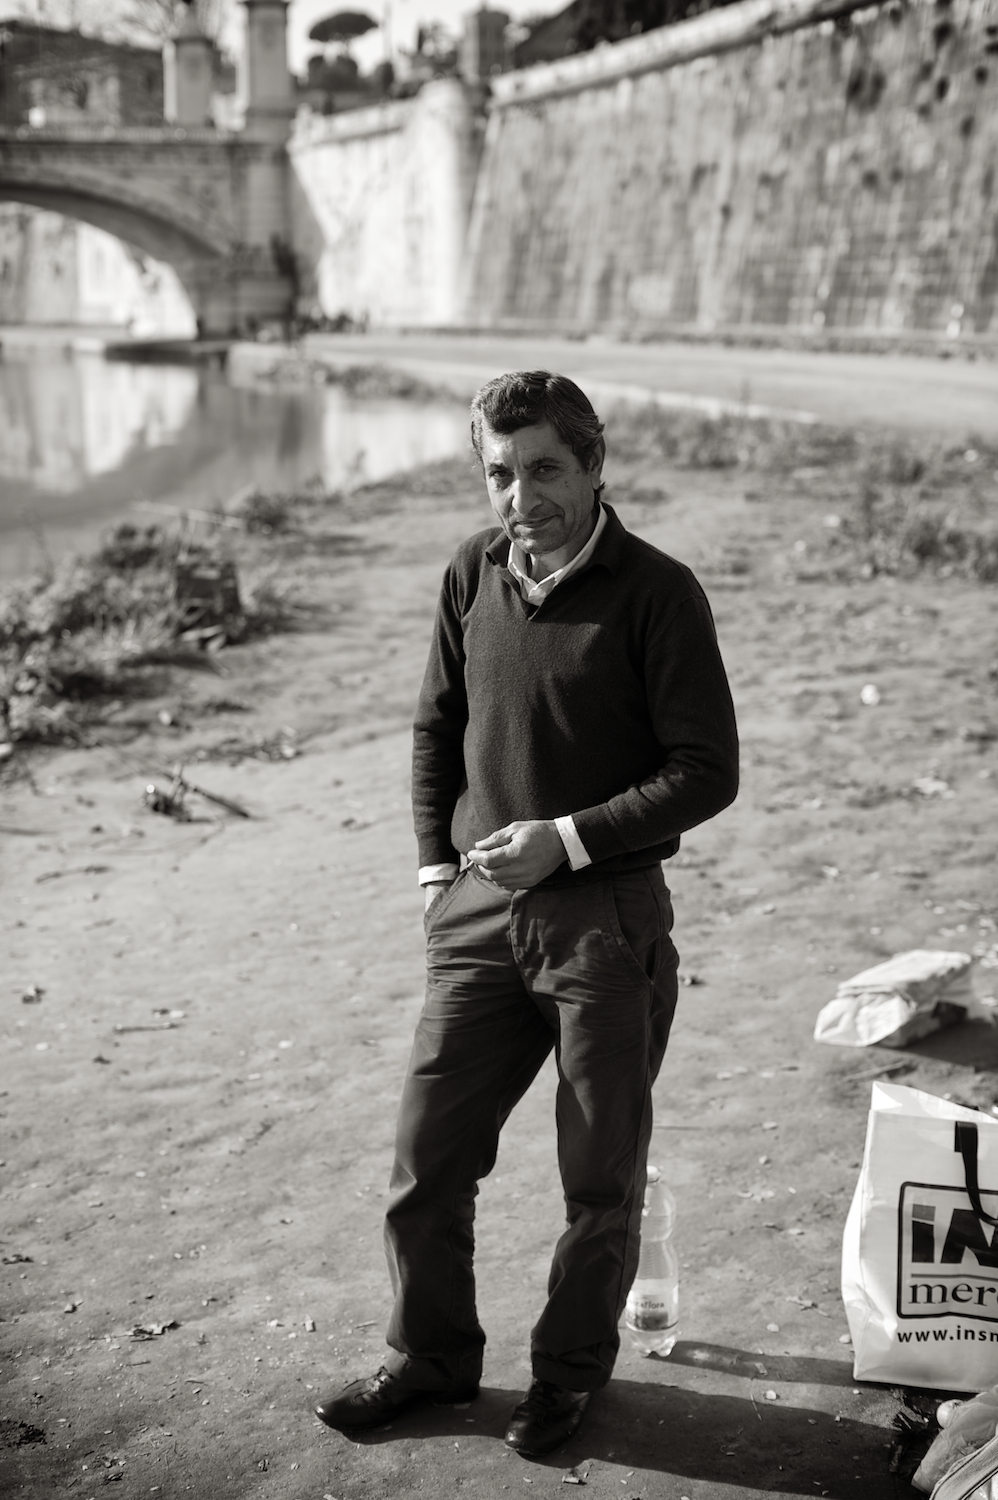 Fisherman. Tiber River. Rome, Italy.